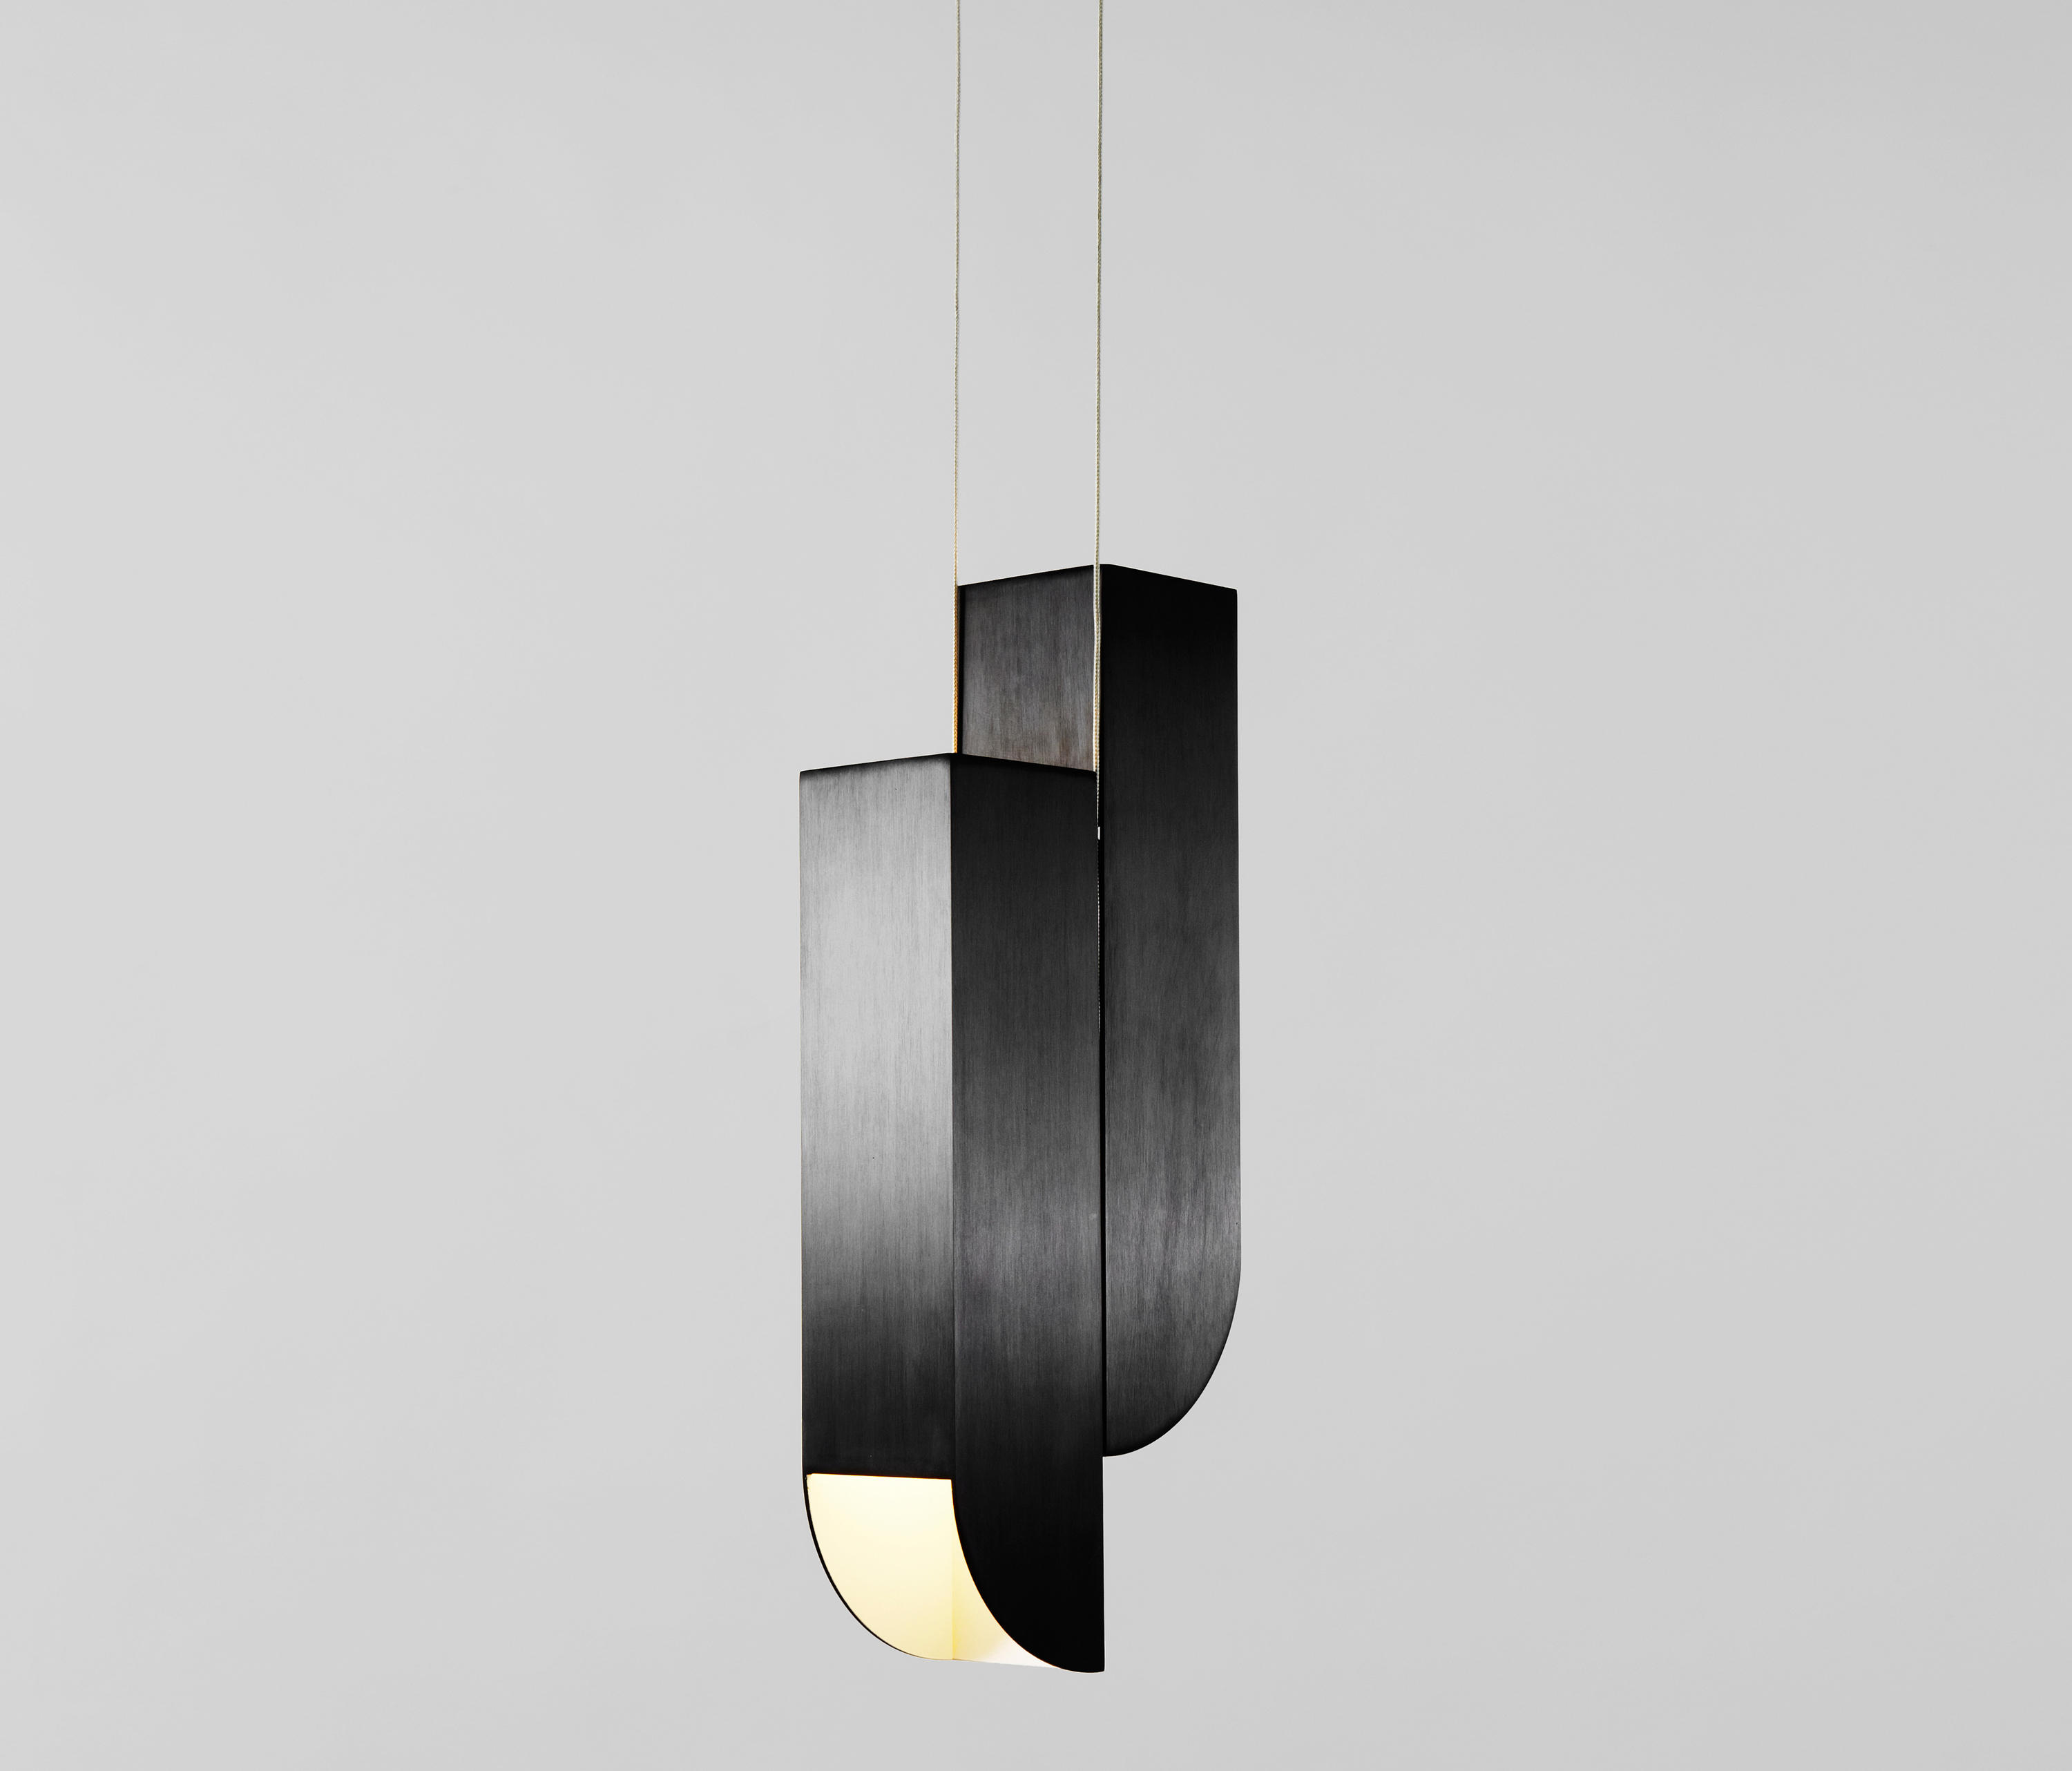 black scandinavian contemporary mid light pendant hanging fixture lamp pivot and century lighting pin article modern